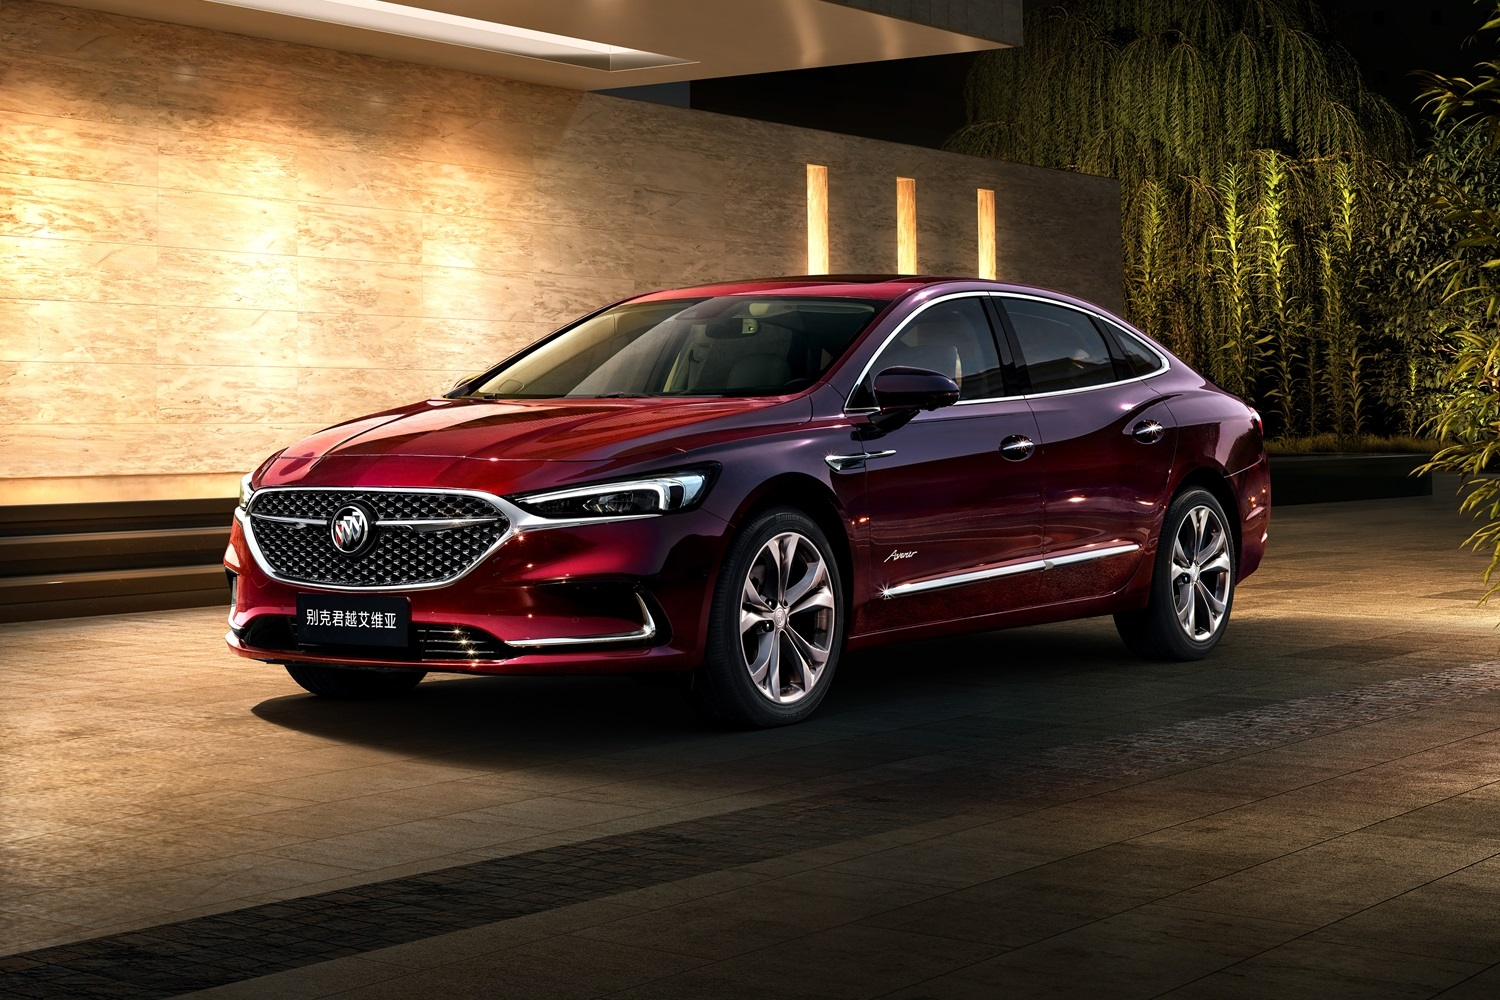 2021 Buick Lacrosse Gets More Refined Than Ever | Gm Authority 2021 Buick Lacrosse Pictures, Trims, Used